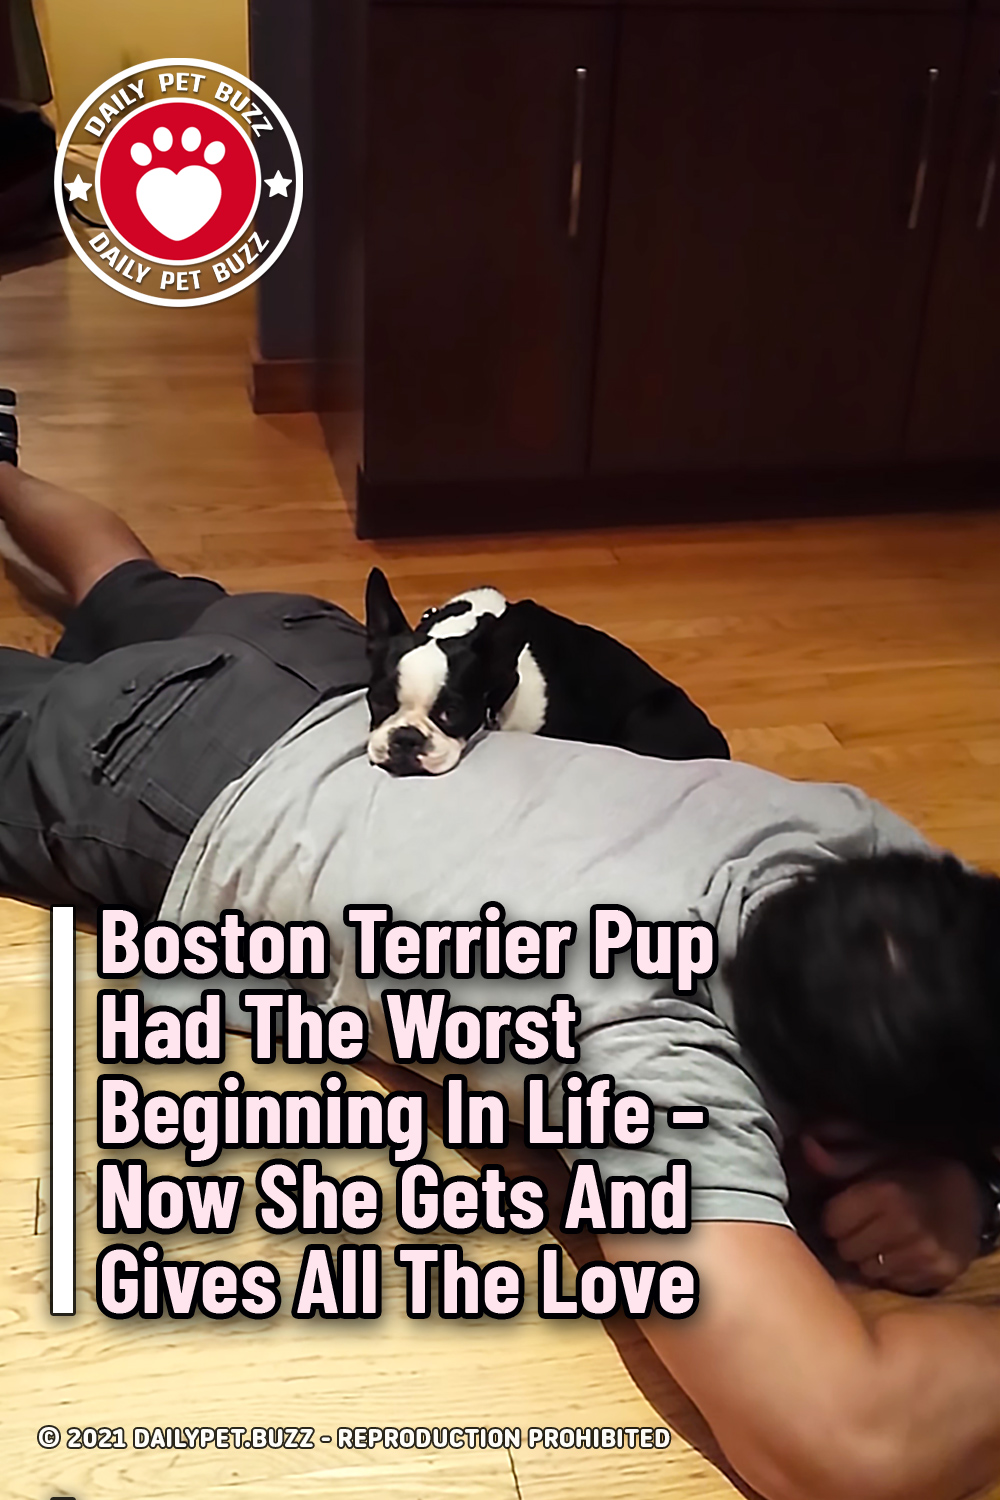 Boston Terrier Pup Had The Worst Beginning In Life – Now She Gets And Gives All The Love